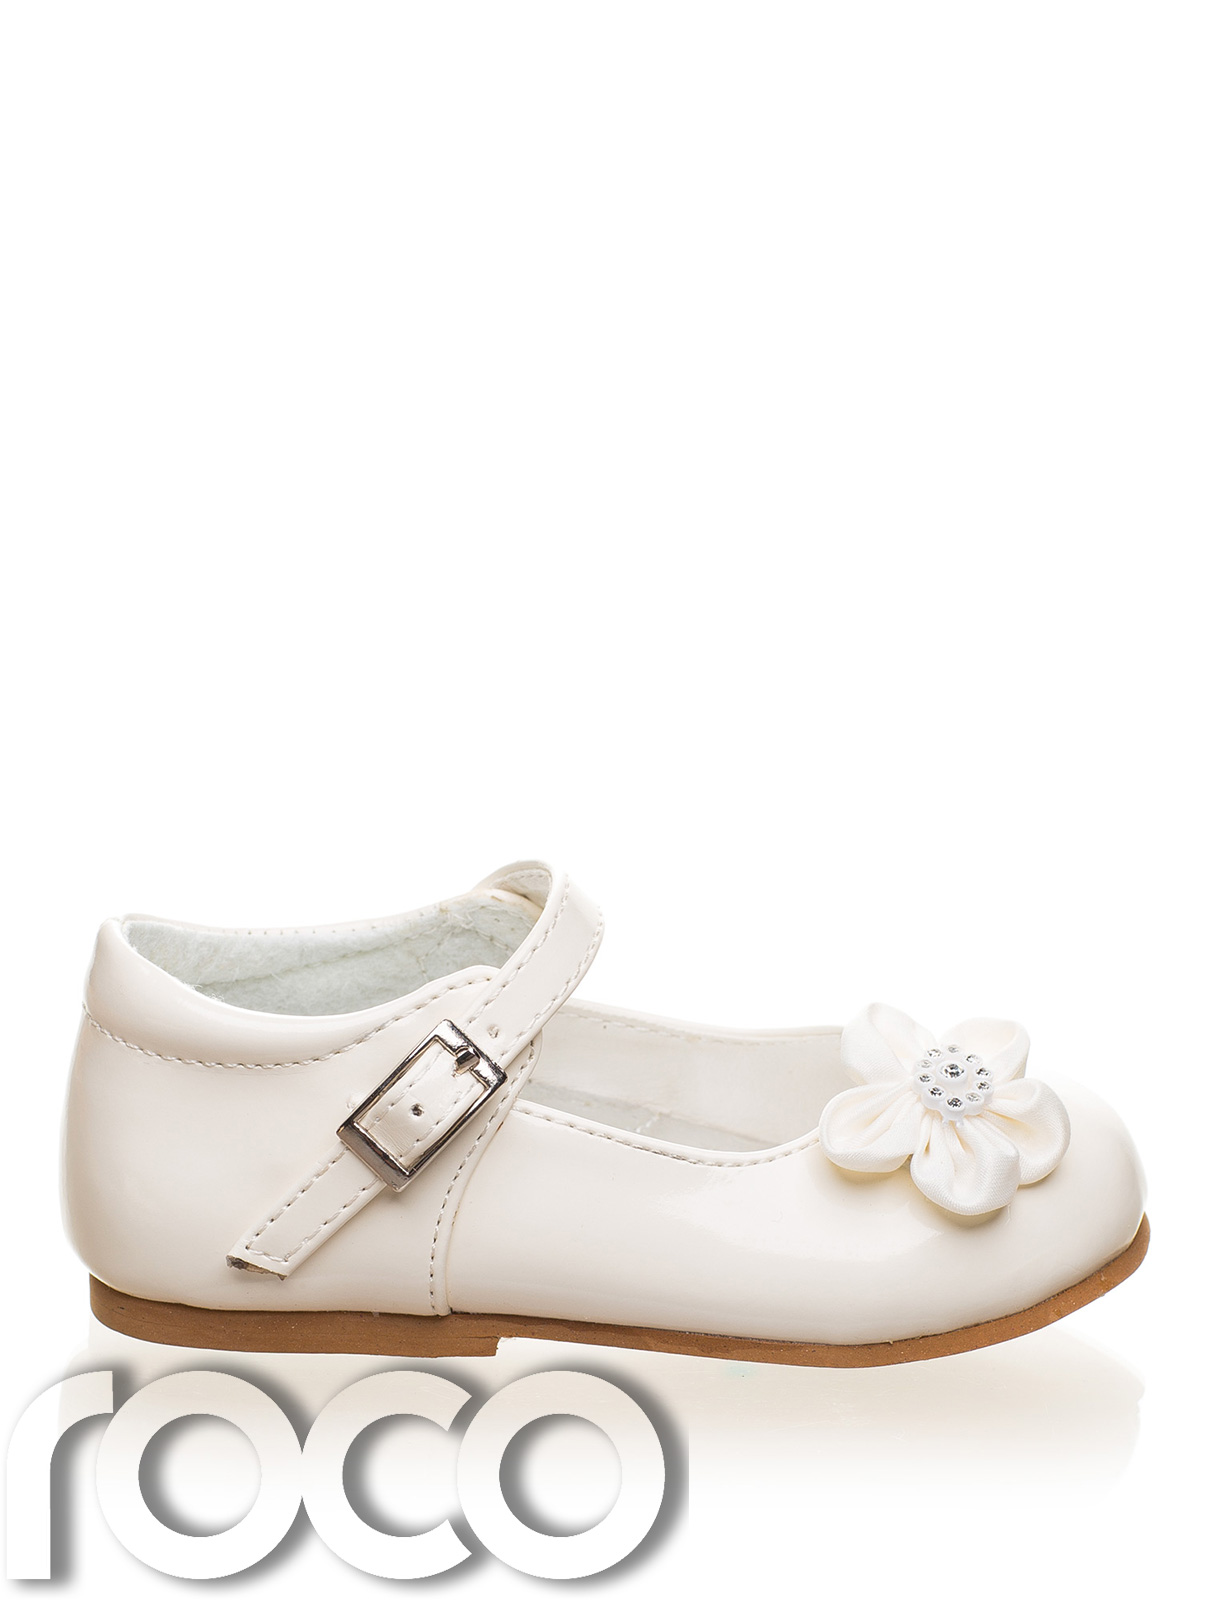 Baby Girls Cream Shoes Christening Wedding Flower Girl Shoes Infant